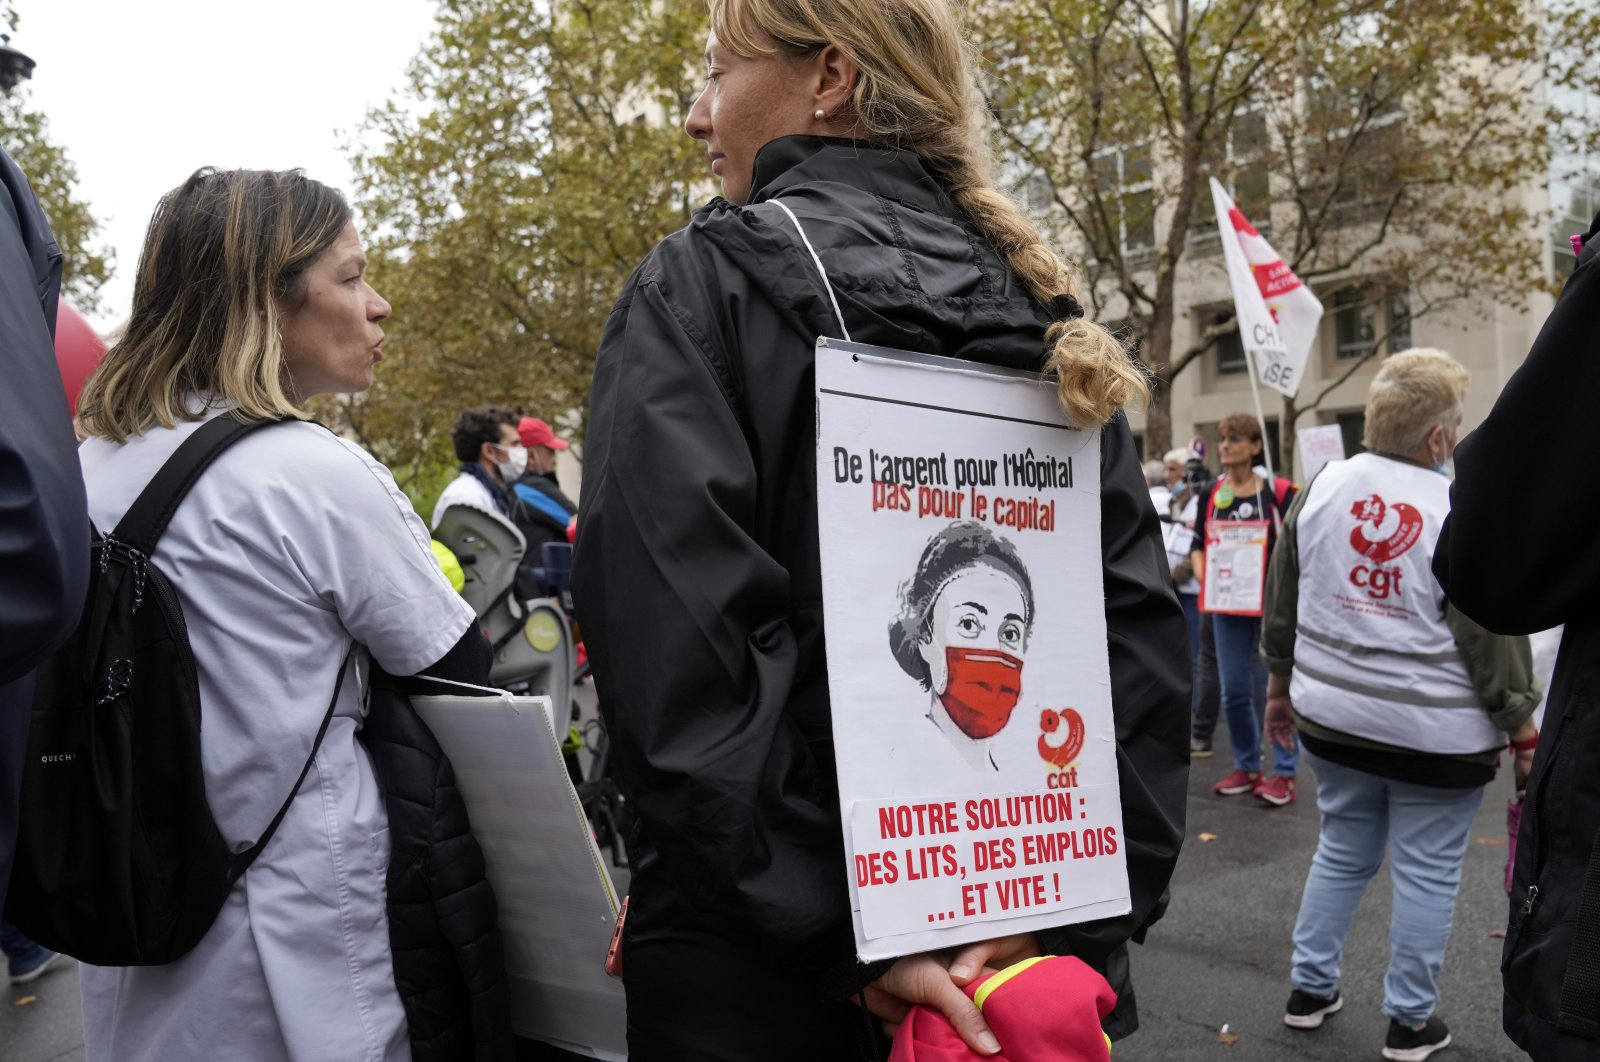 """A medical worker holds a placard reading: """"Money for Hospitals, Not for the Capital. Our Solution: Hospitals beds, Employees... Quickly!"""" during a protest gathering outside the Health Ministry, in Paris, Sept. 14, 2021. (AP Photo)"""